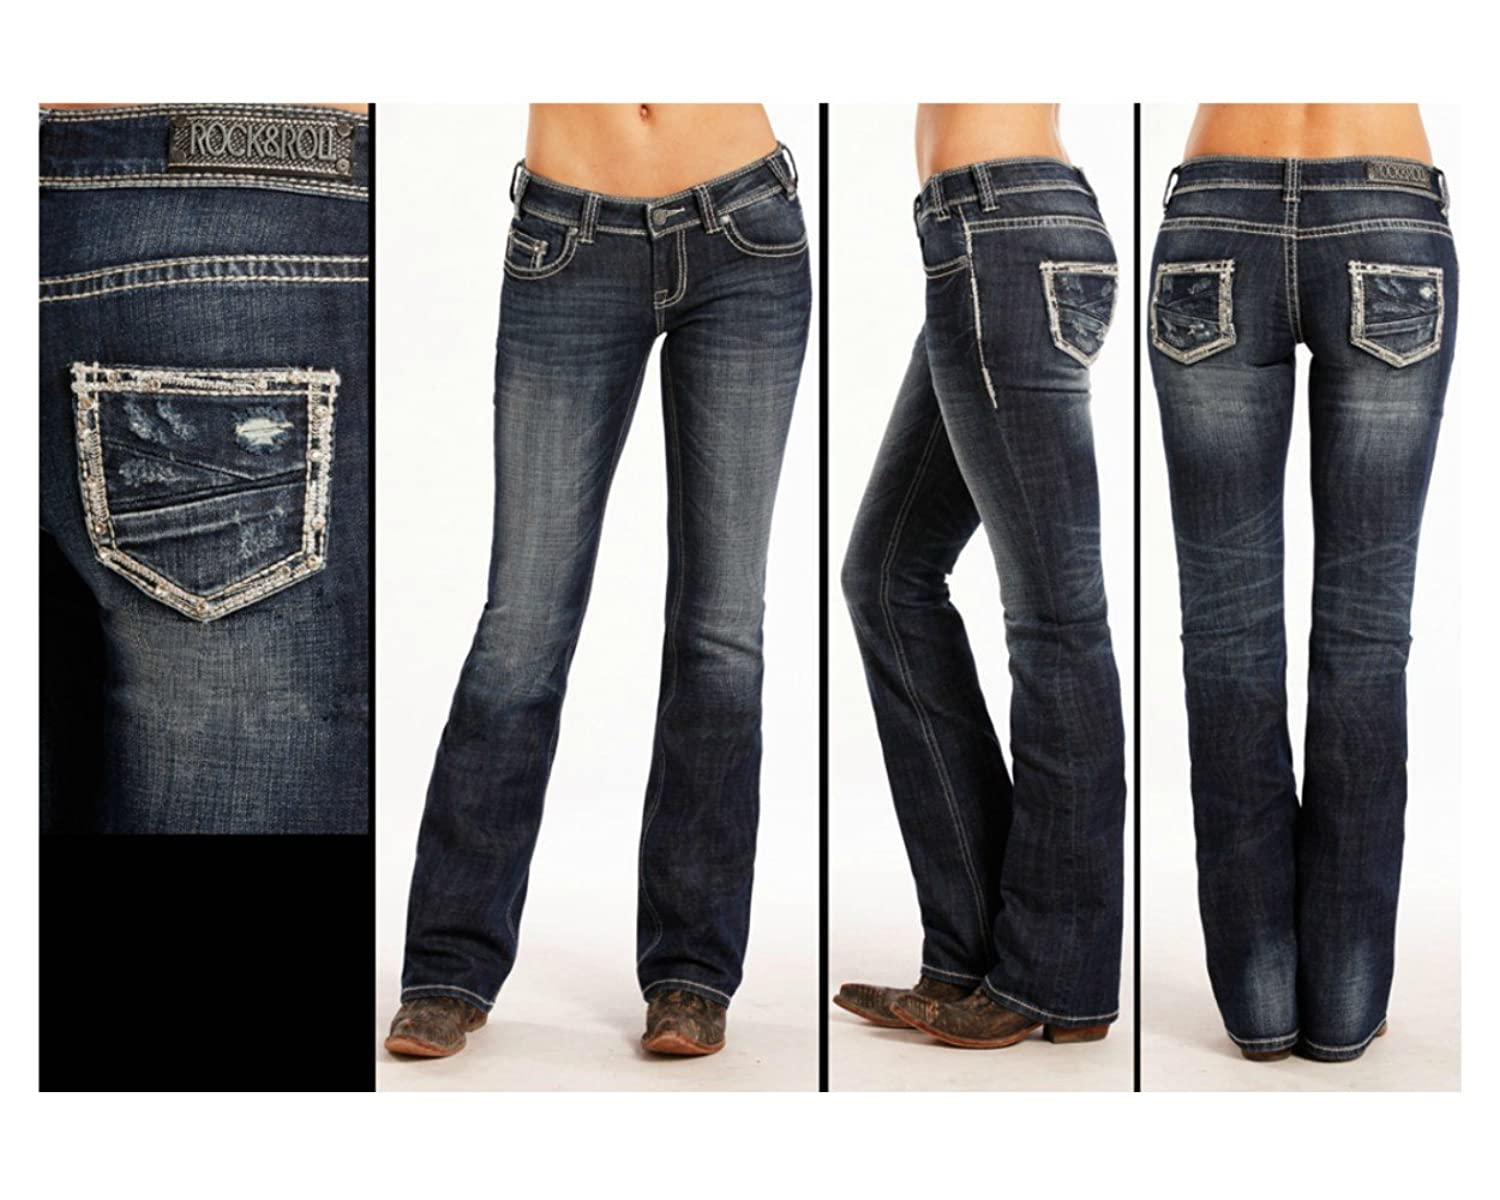 W6-8467 Rock and Roll Cowgirl Rival Bootcut Jean With Rhinestone Detail